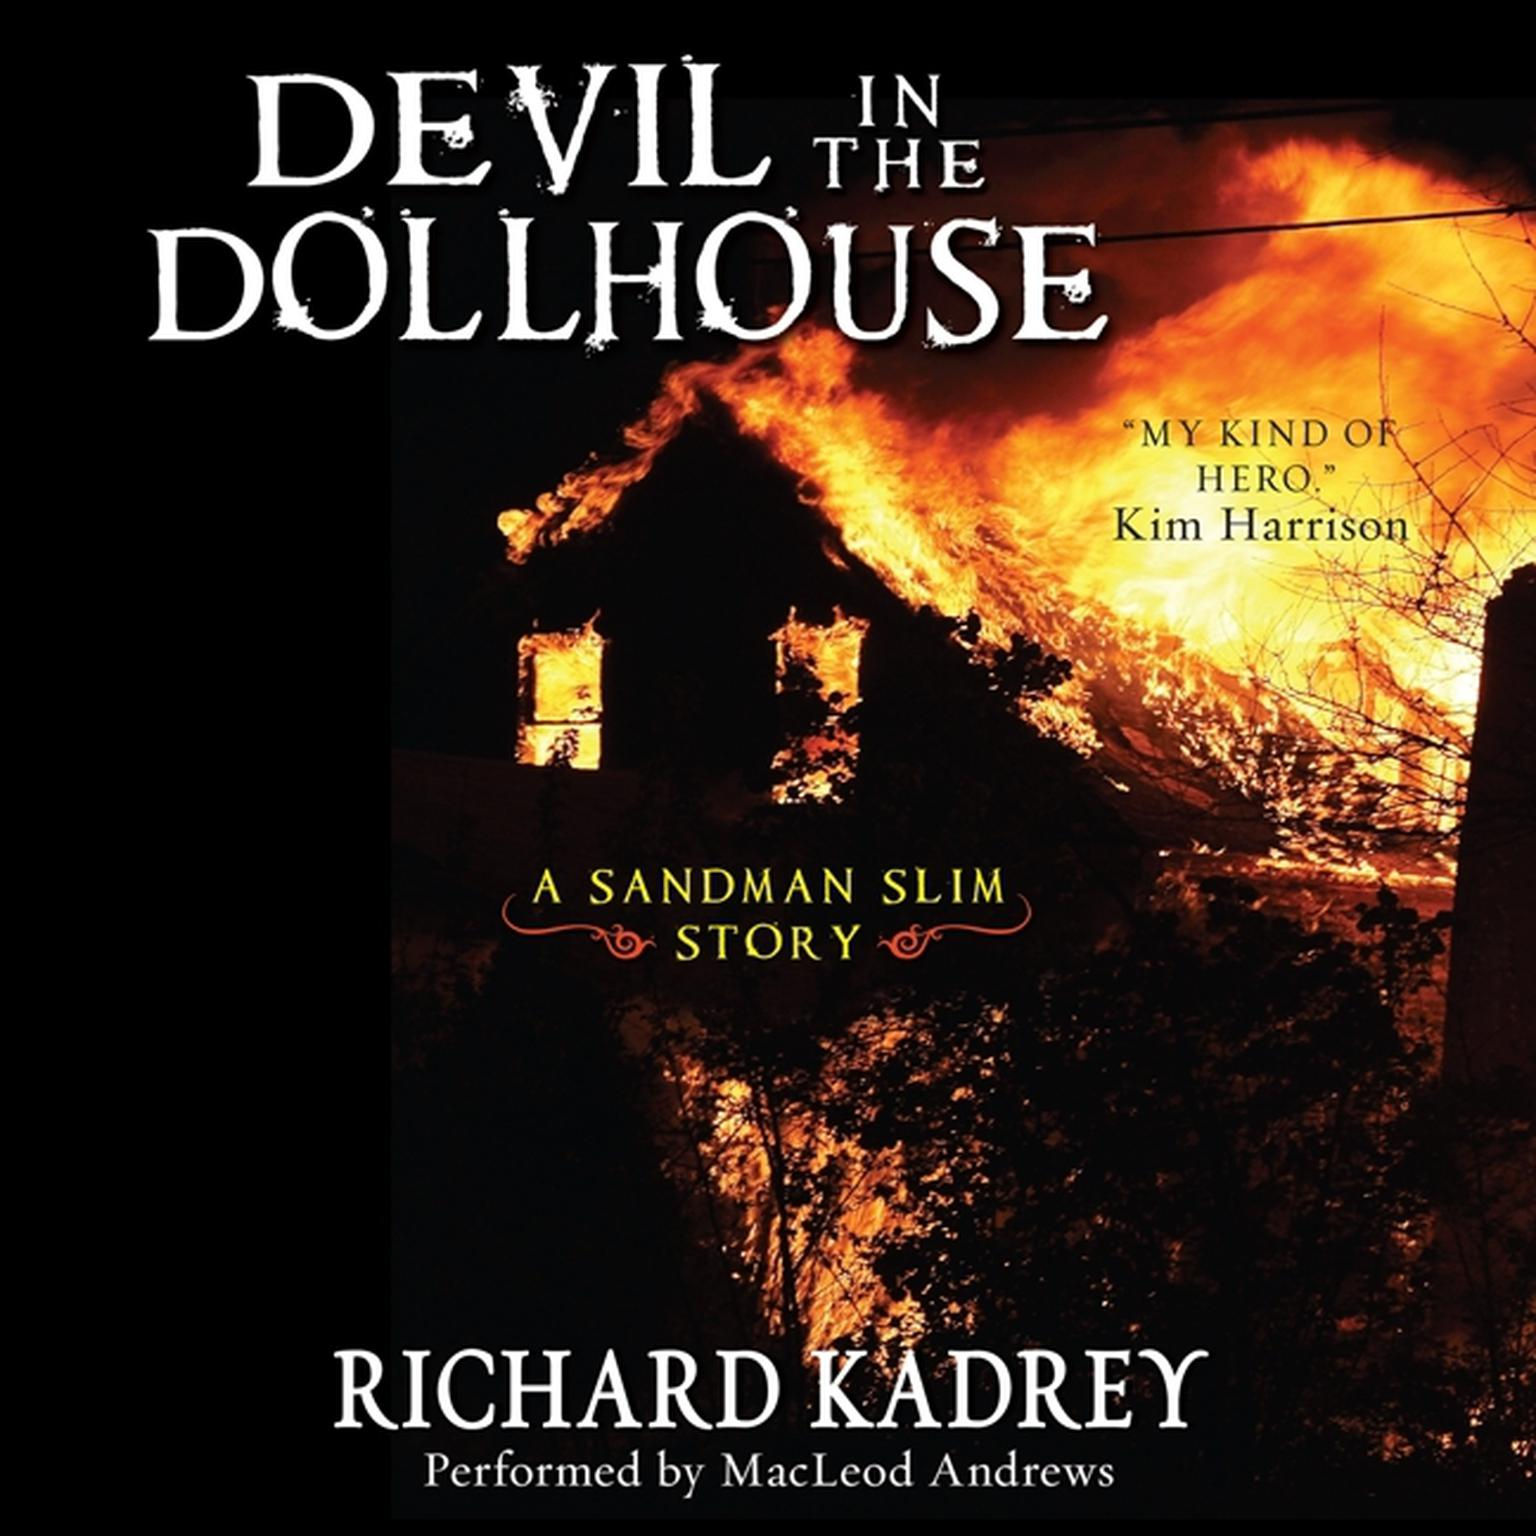 Printable Devil in the Dollhouse: A Sandman Slim Story Audiobook Cover Art